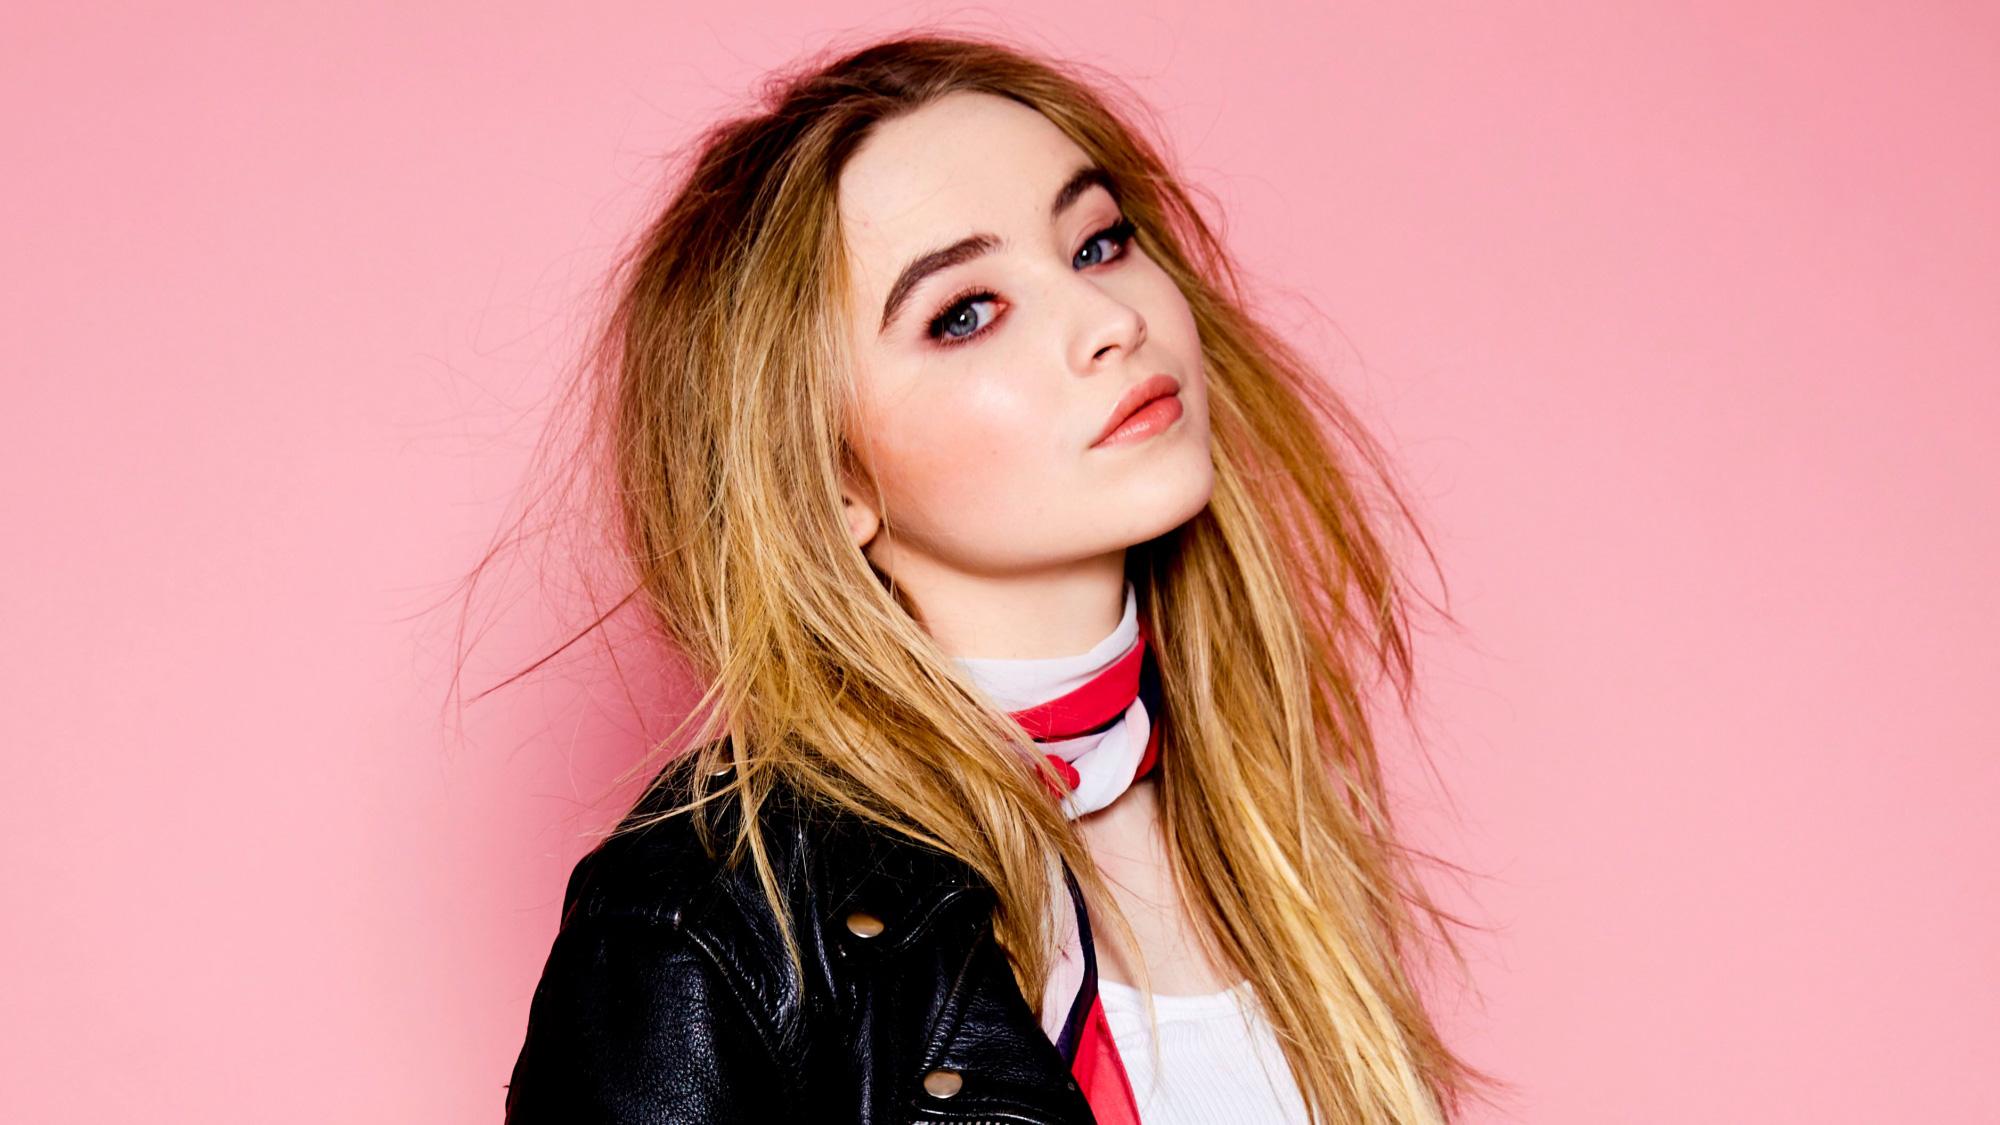 2018 sabrina carpenter latest hd celebrities 4k - Sabrina carpenter hd wallpaper ...